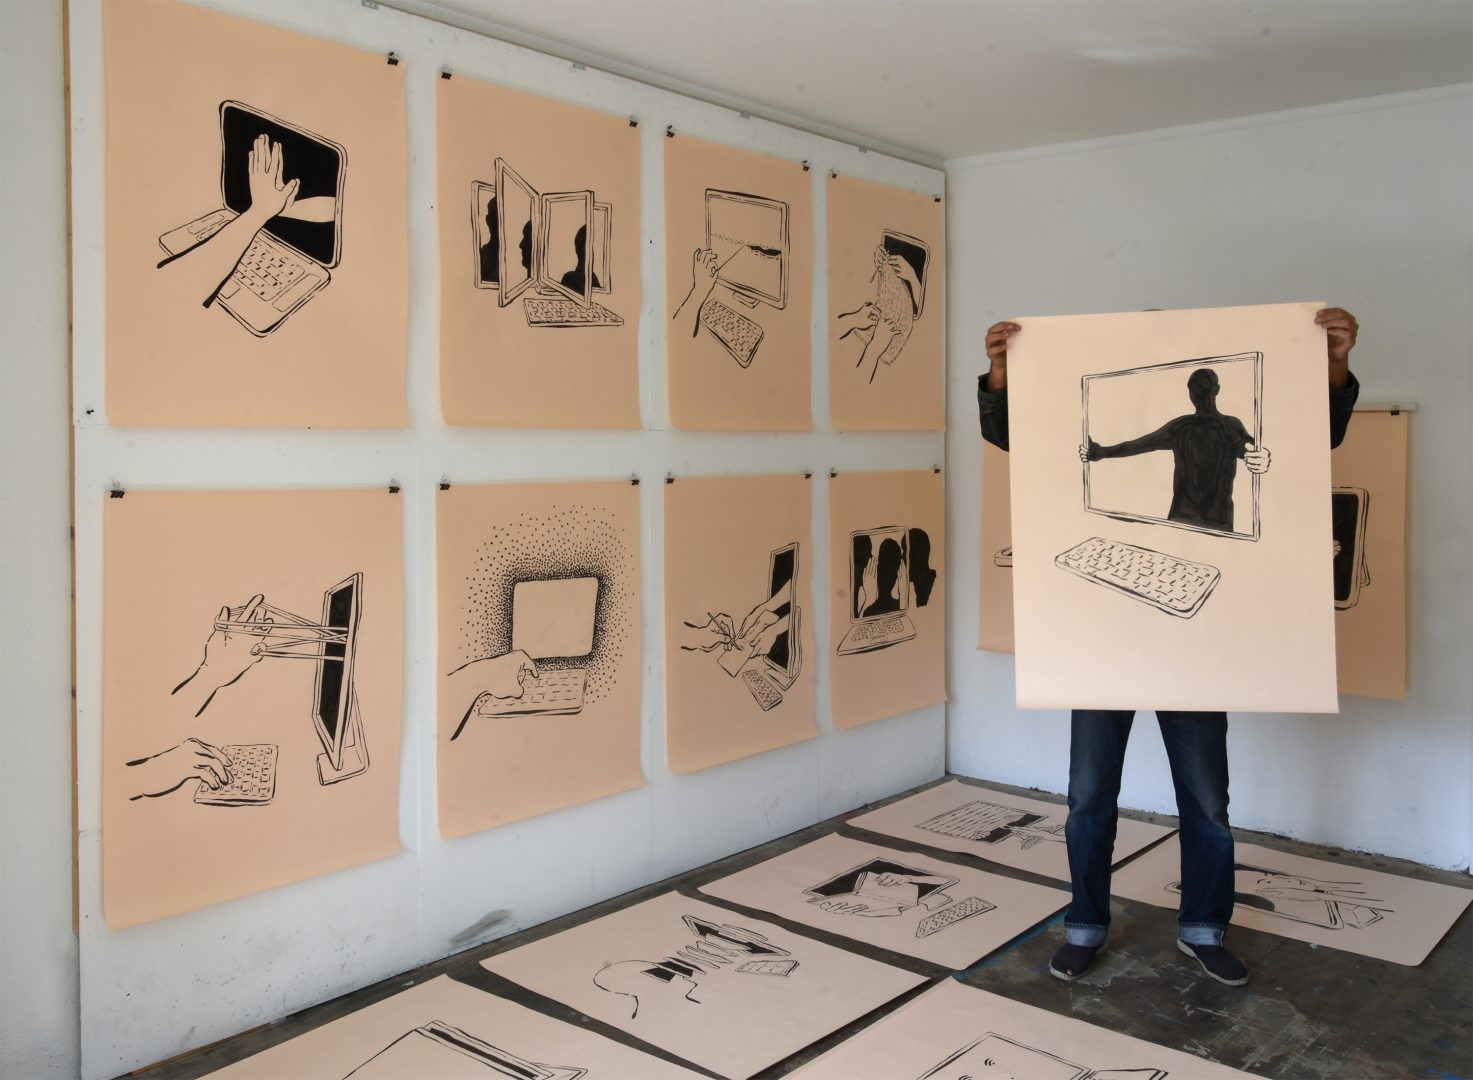 ZHdK faculty member Andreas Hofer documented the 2020 March lockdown in several ink drawings. Photograph: Andreas Hofer